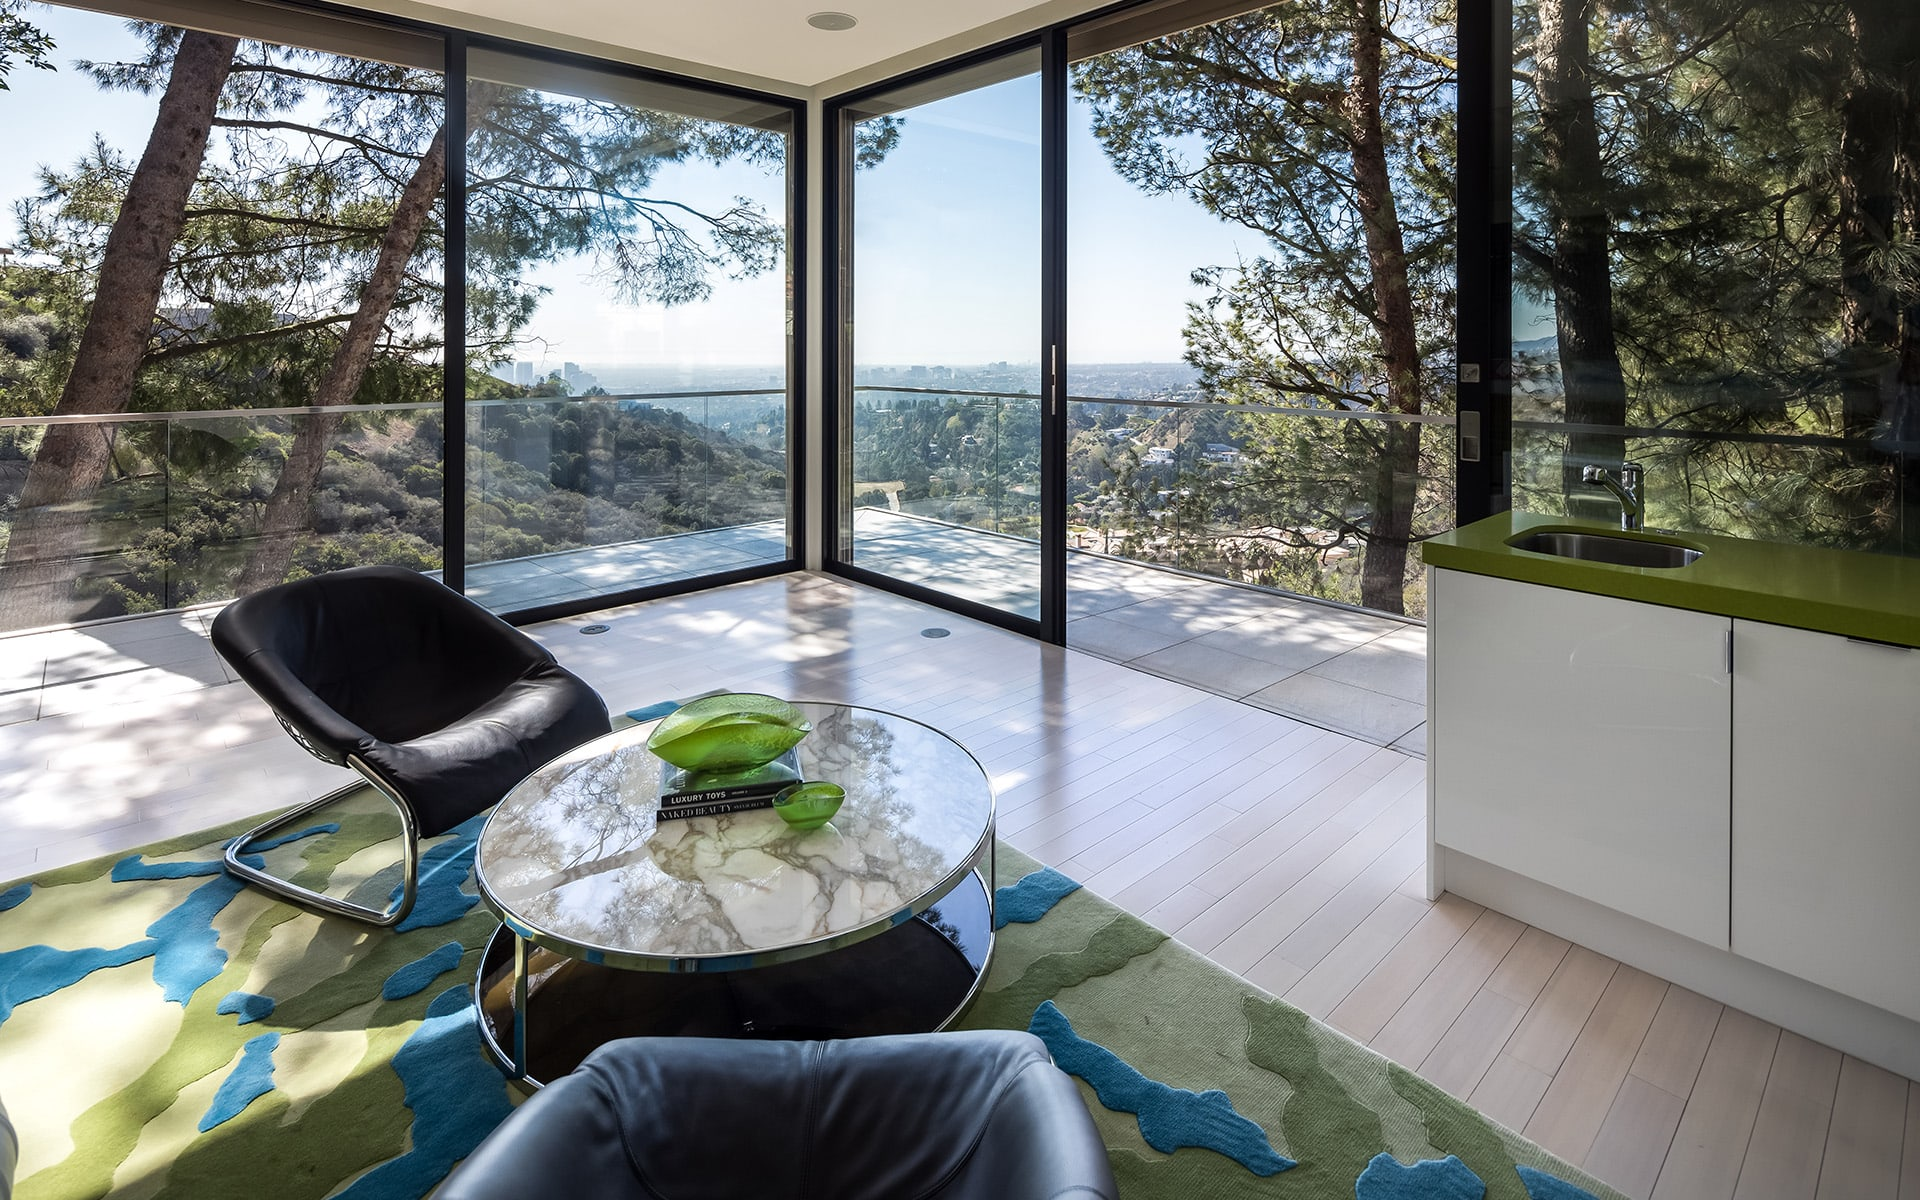 California real estate and homes for sale christies international real estate